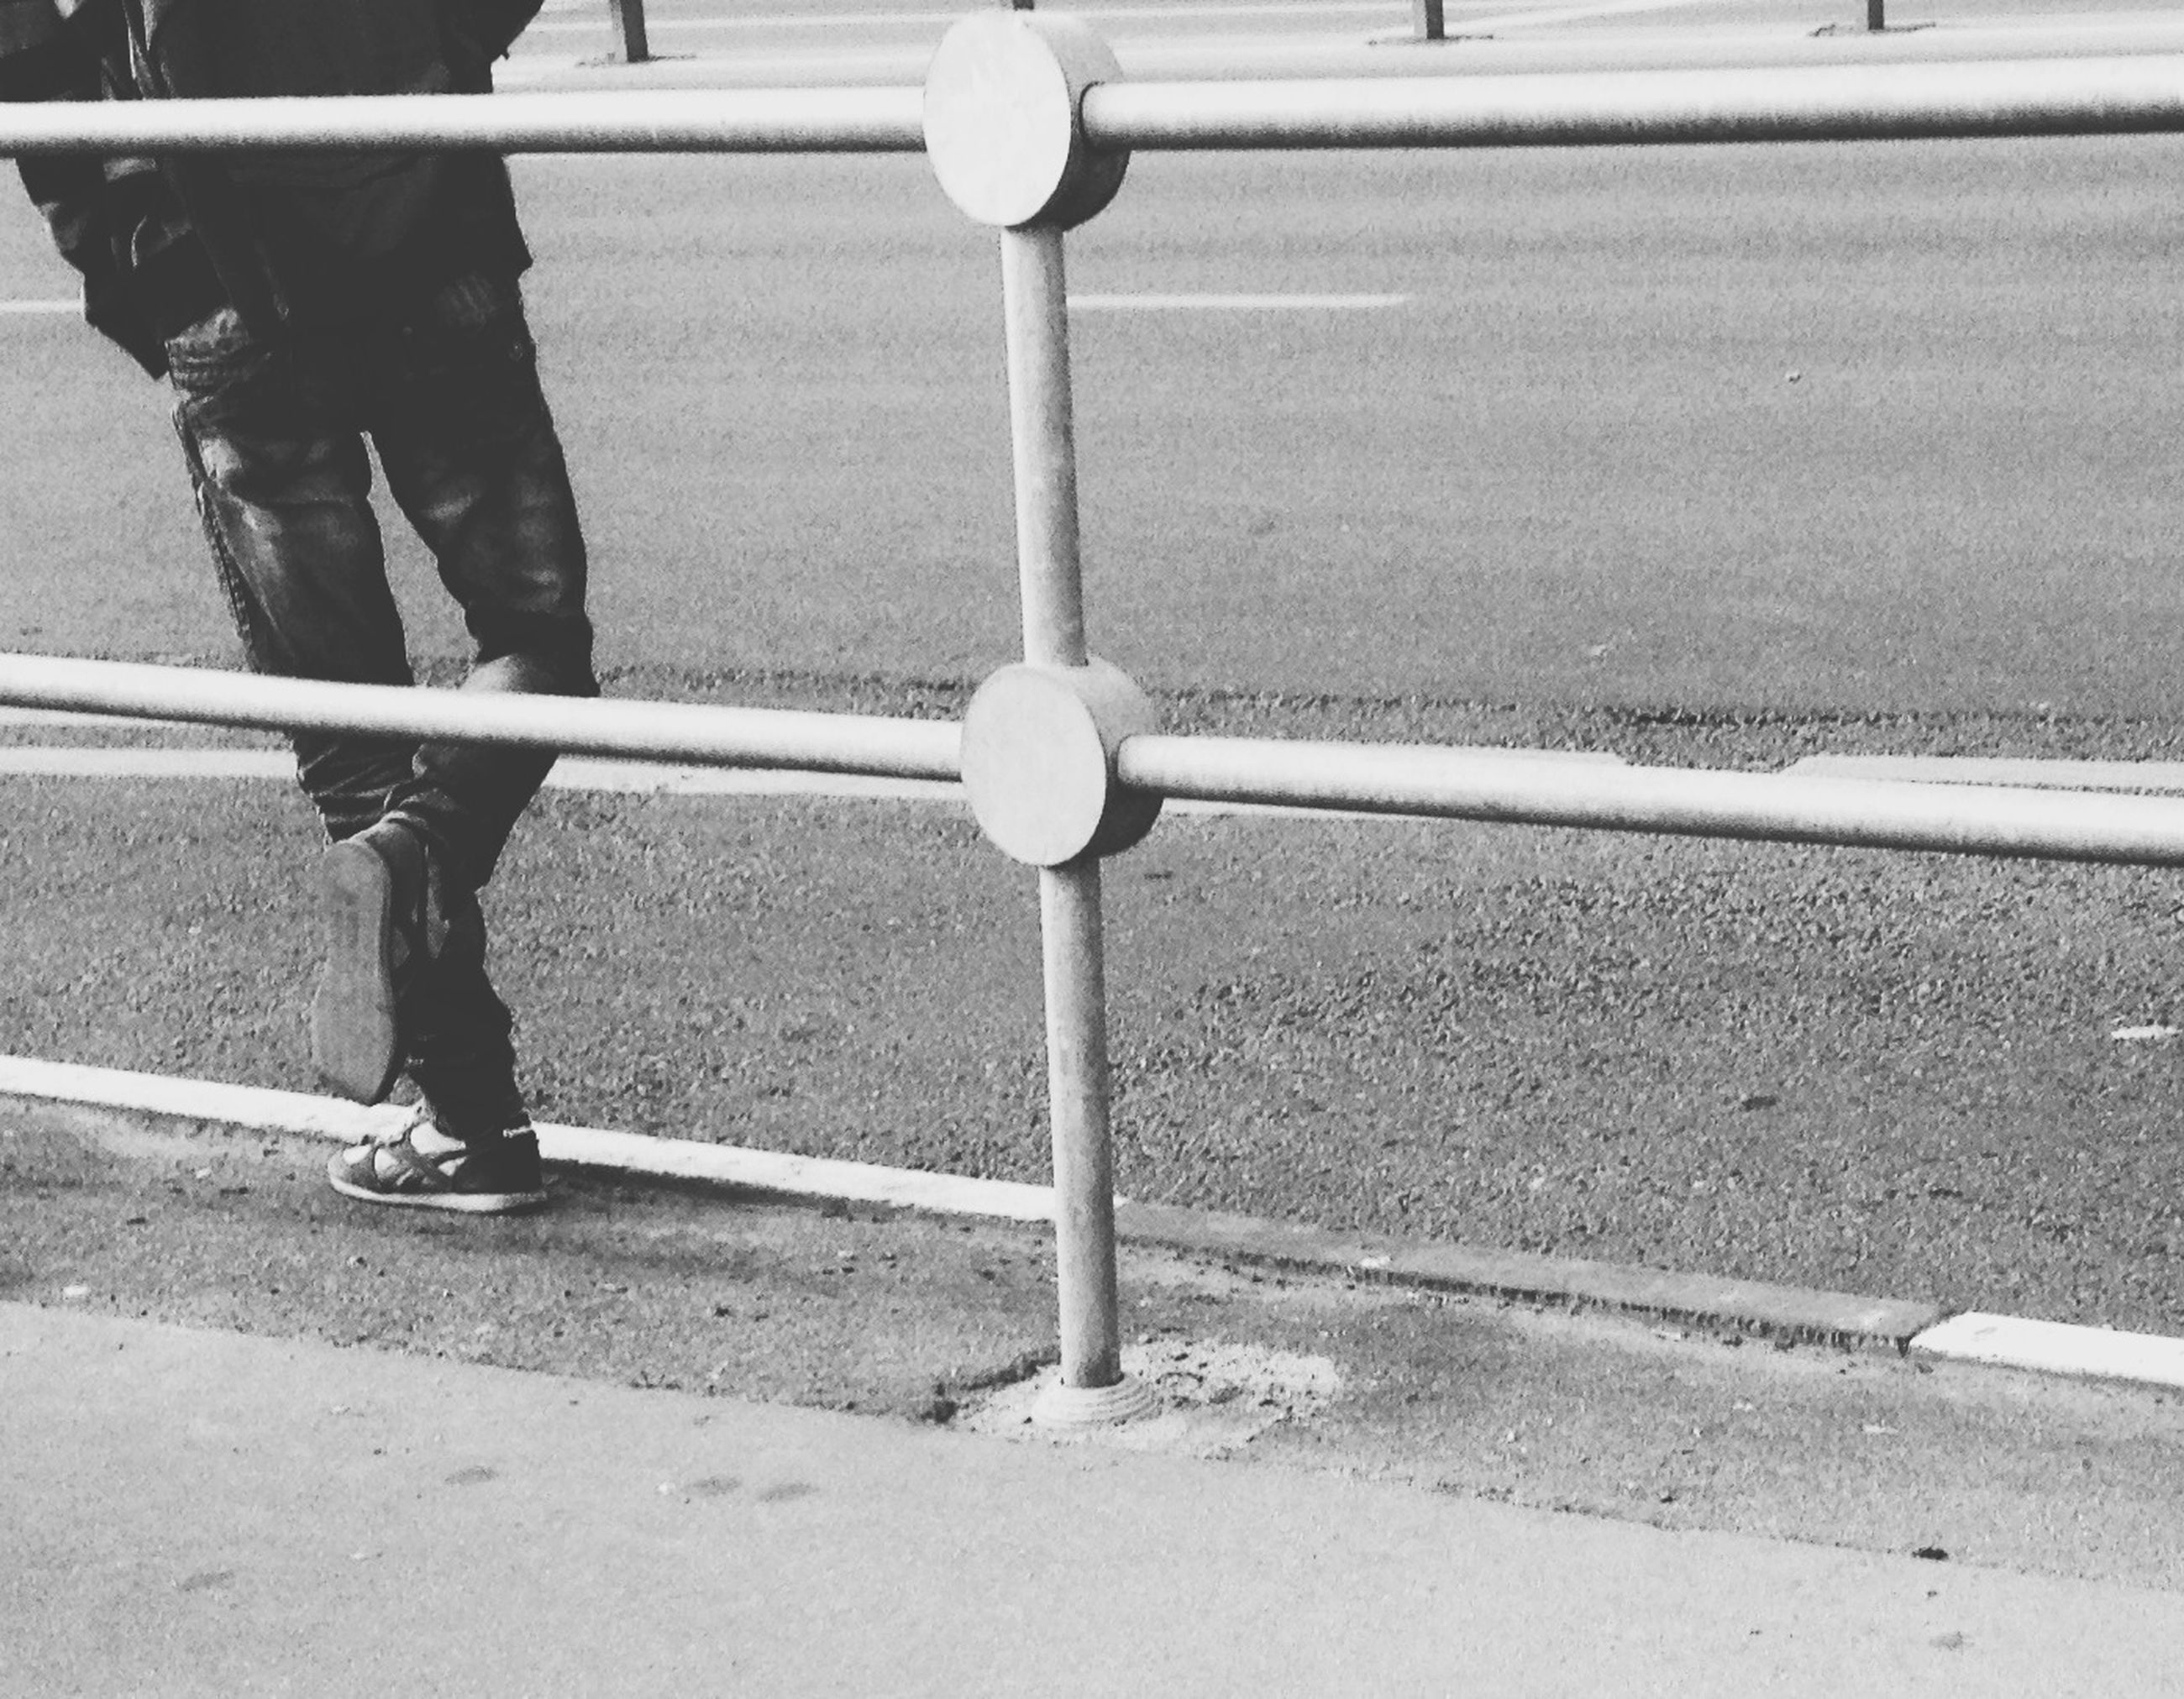 street, walking, metal, day, railing, standing, fence, outdoors, men, road, sidewalk, sunlight, protection, full length, safety, lifestyles, low section, shadow